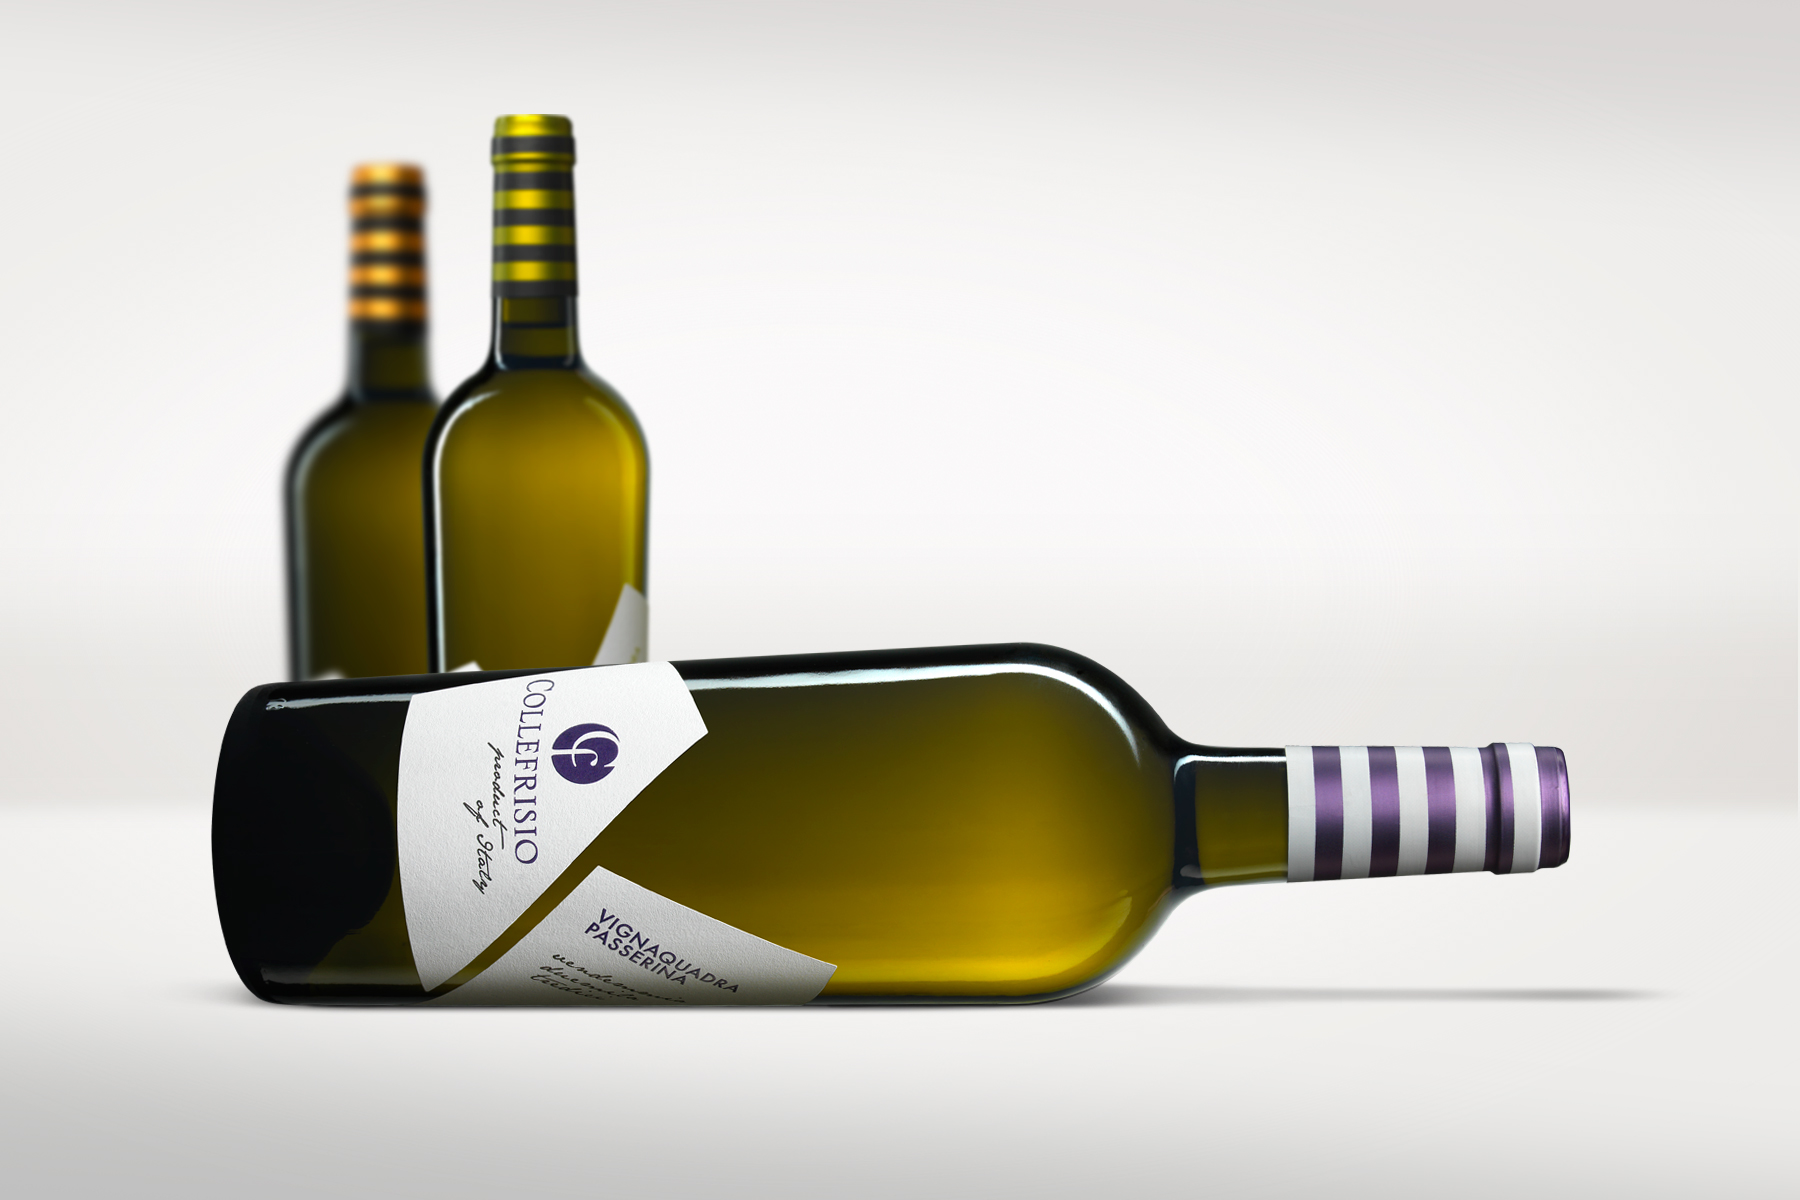 spaziodipaolo_collefrisio_vini_packaging_3